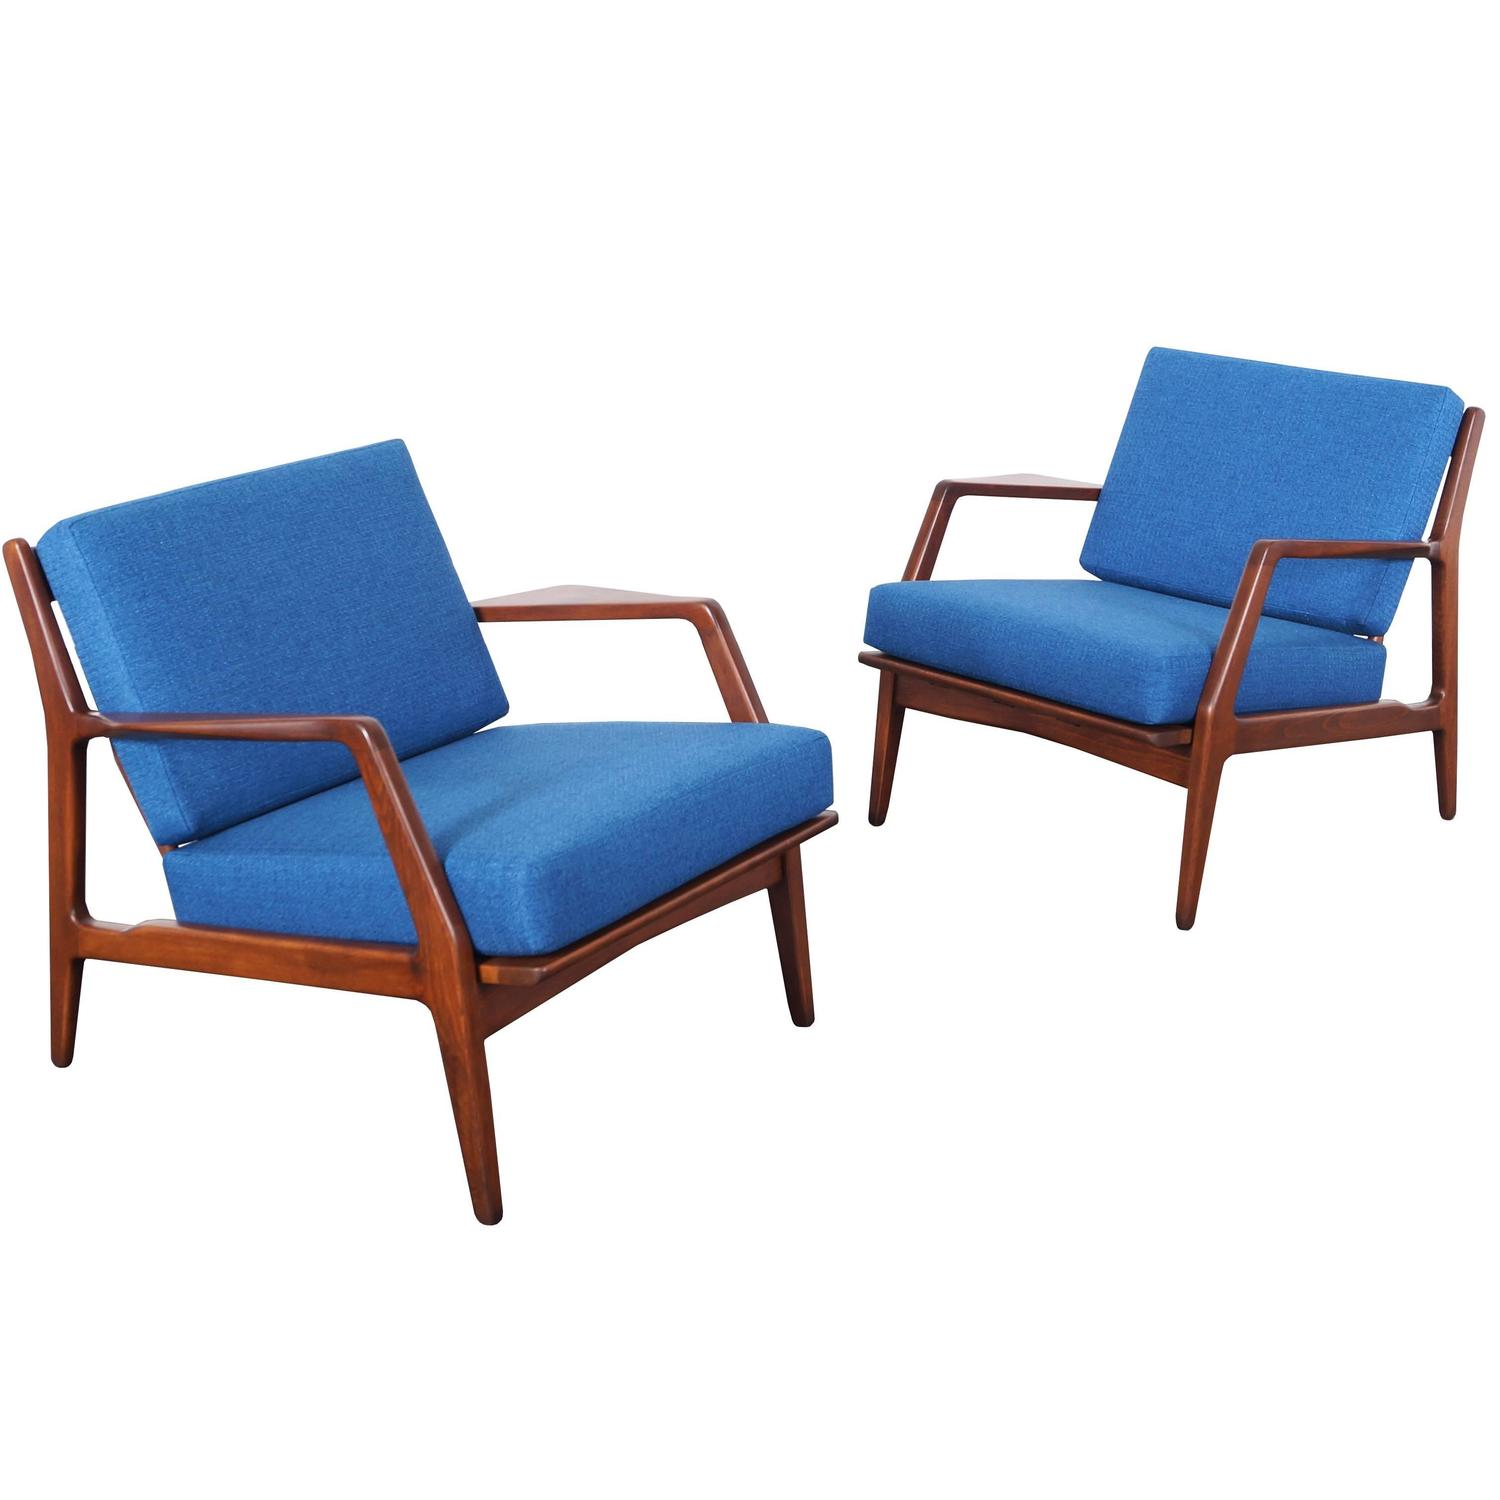 Inspirational mid century modern lounge chair for Modern lounge furniture